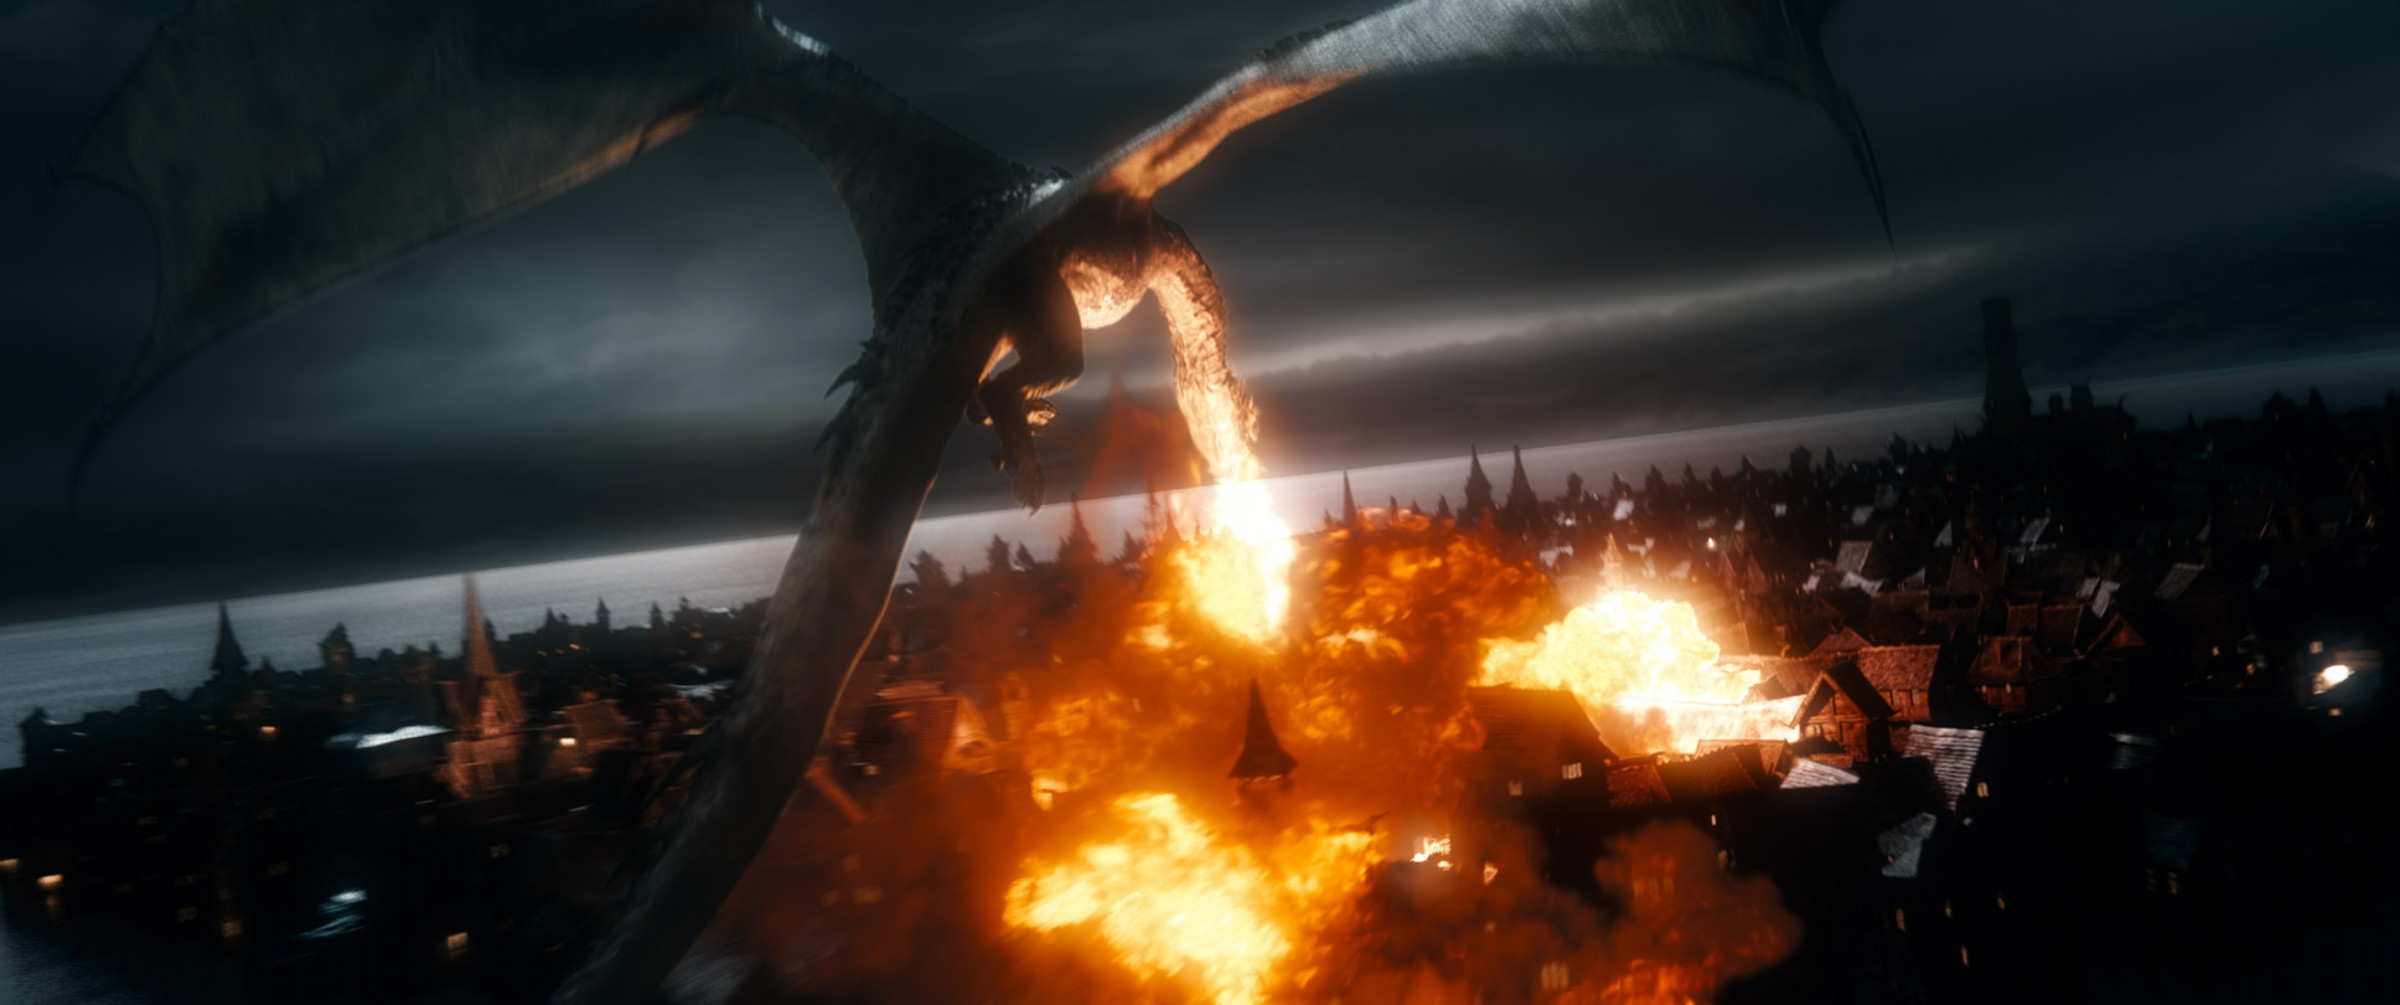 The Hobbit The Battle of the Five Armies-PHOTOS-04DEZEMBRO2014-16